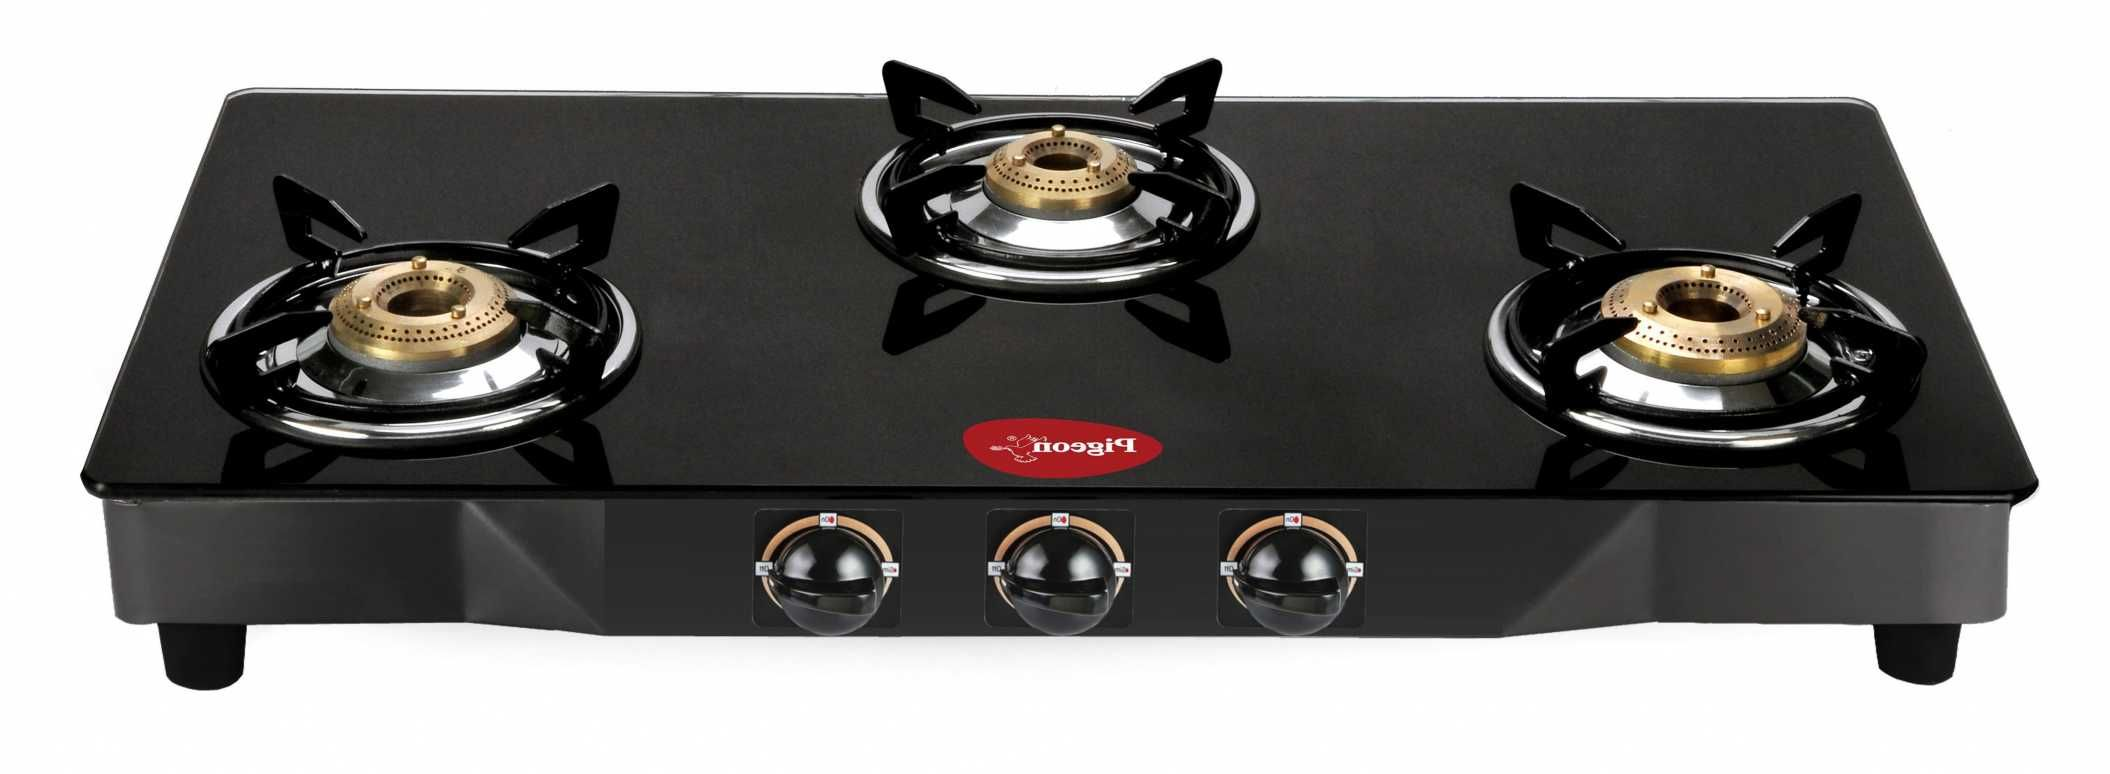 pigeon black line square 3 burner glass manual gas stove price in